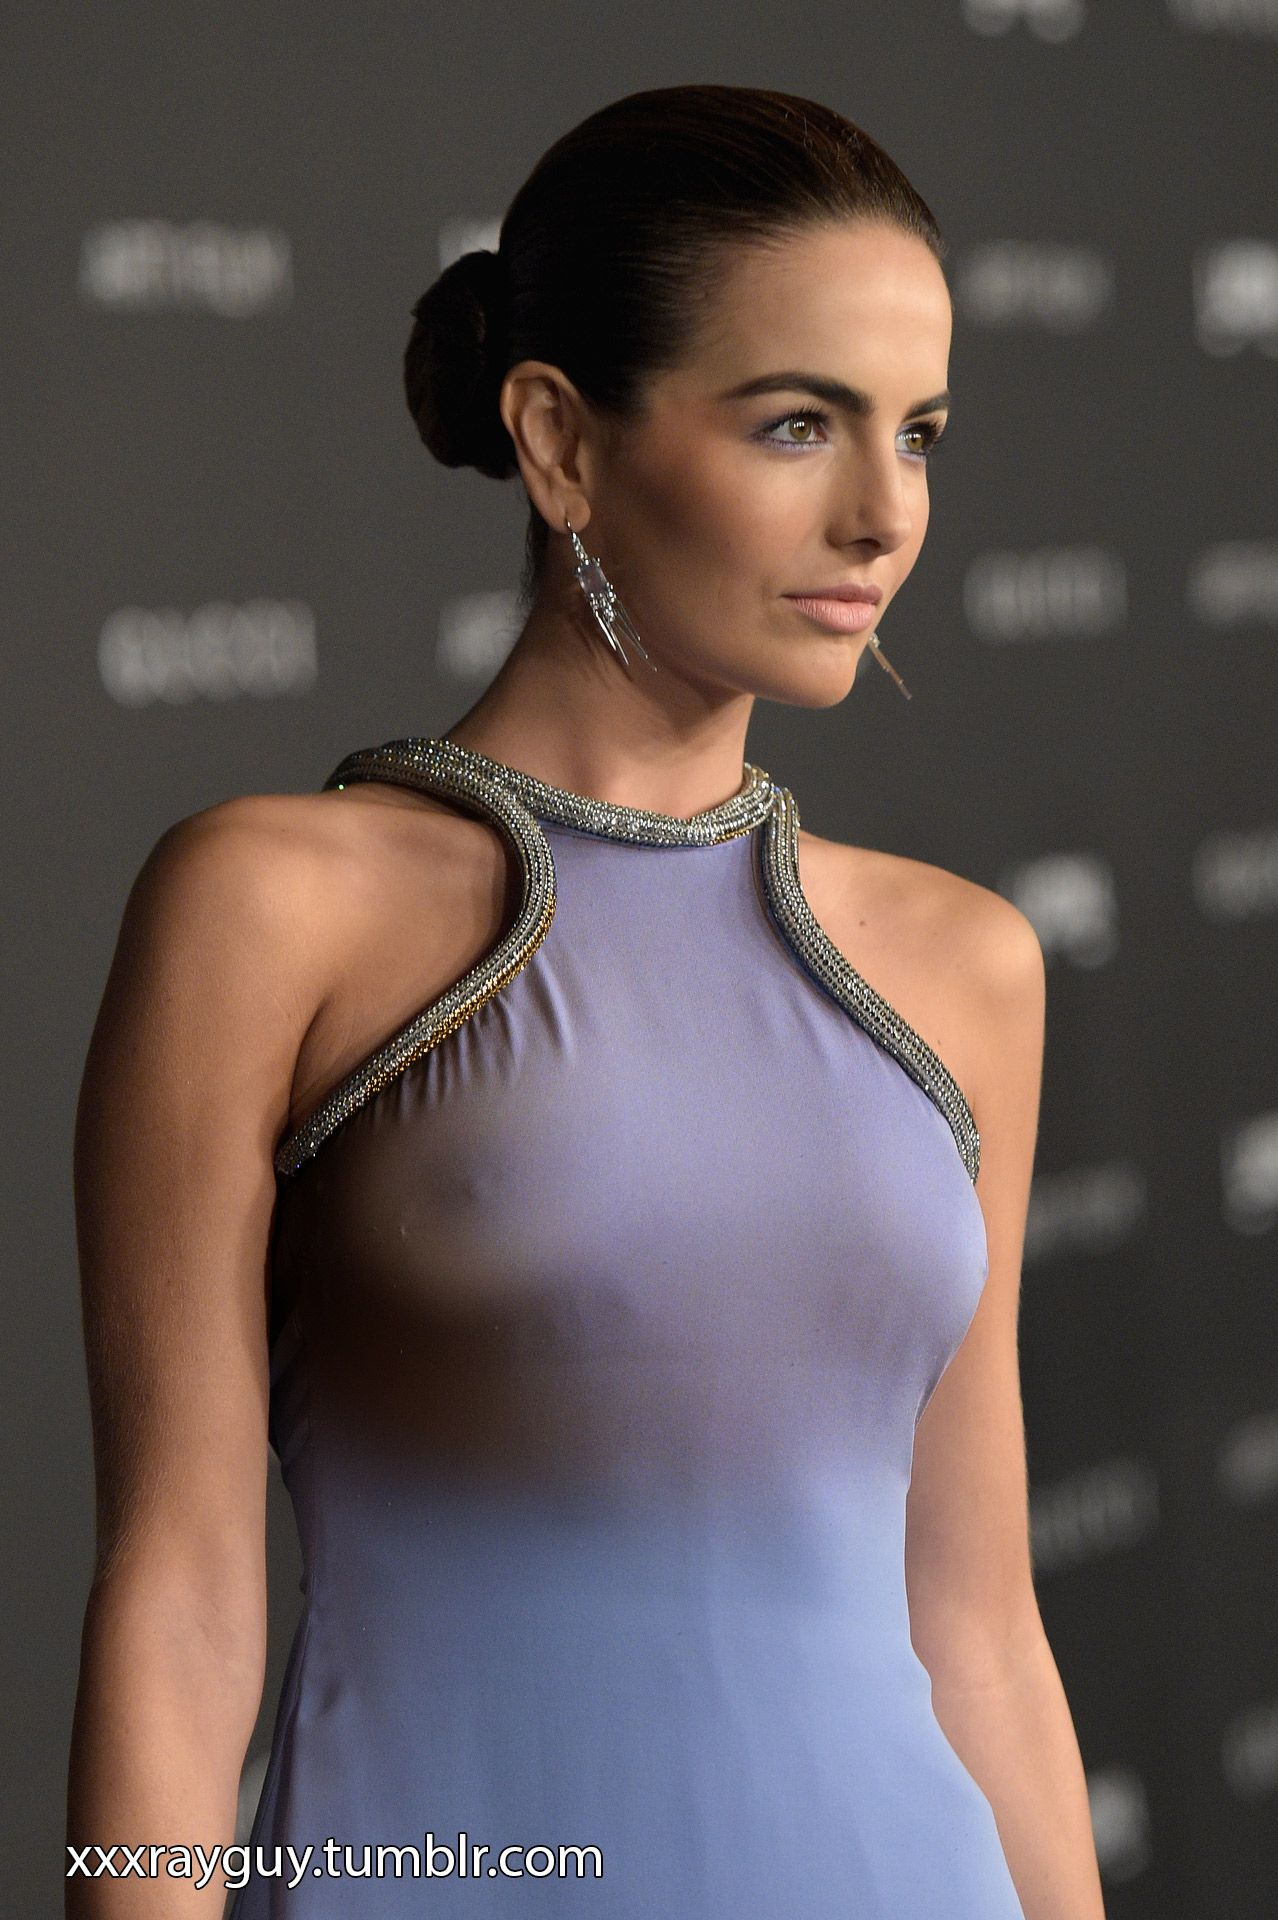 Simply excellent camilla belle porn